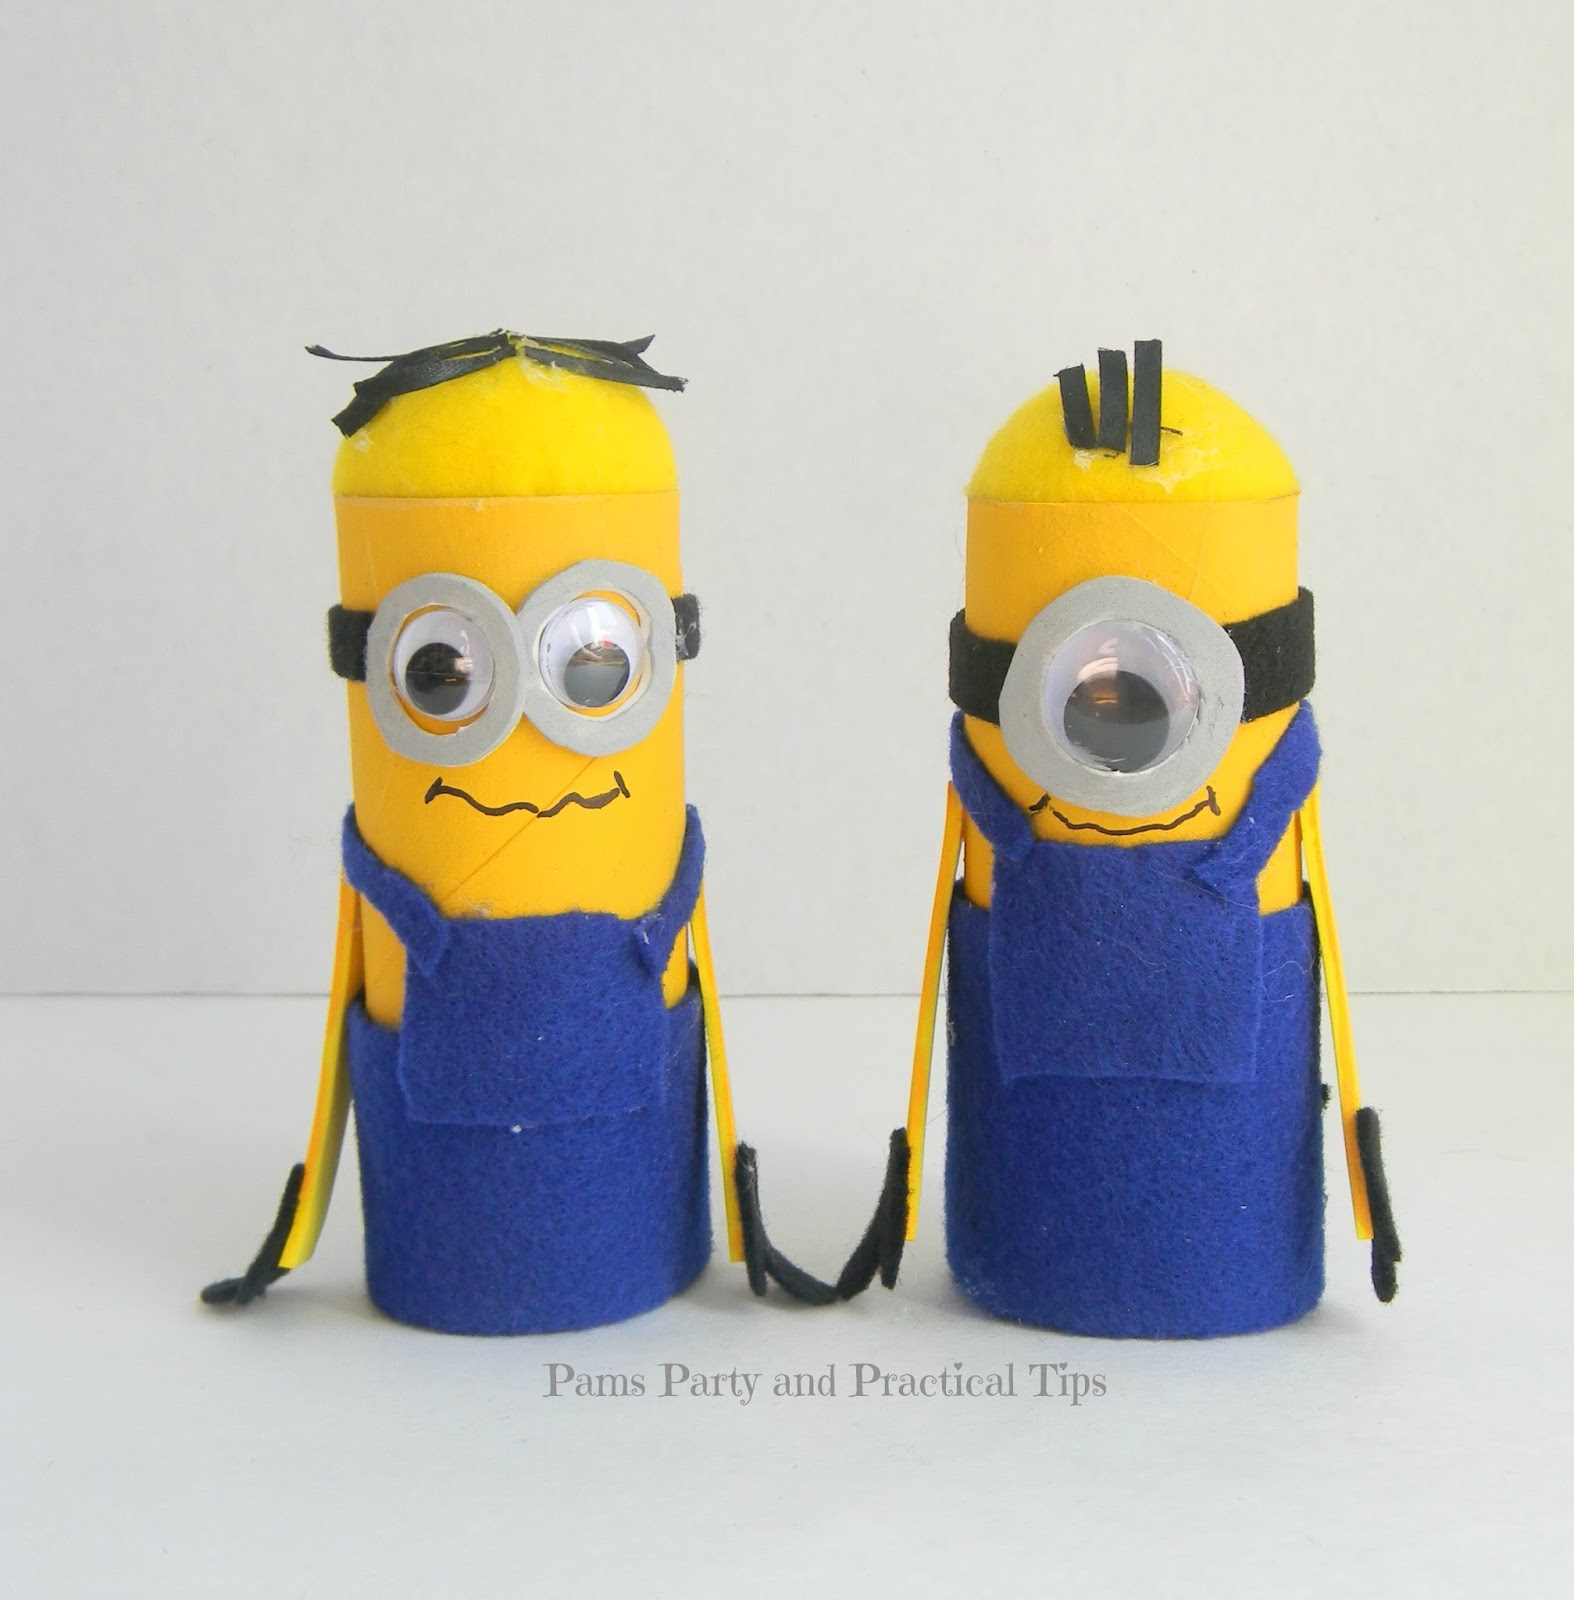 Papier Peint Minions Pams Party And Practical Tips How To Make Despicable Me Minions